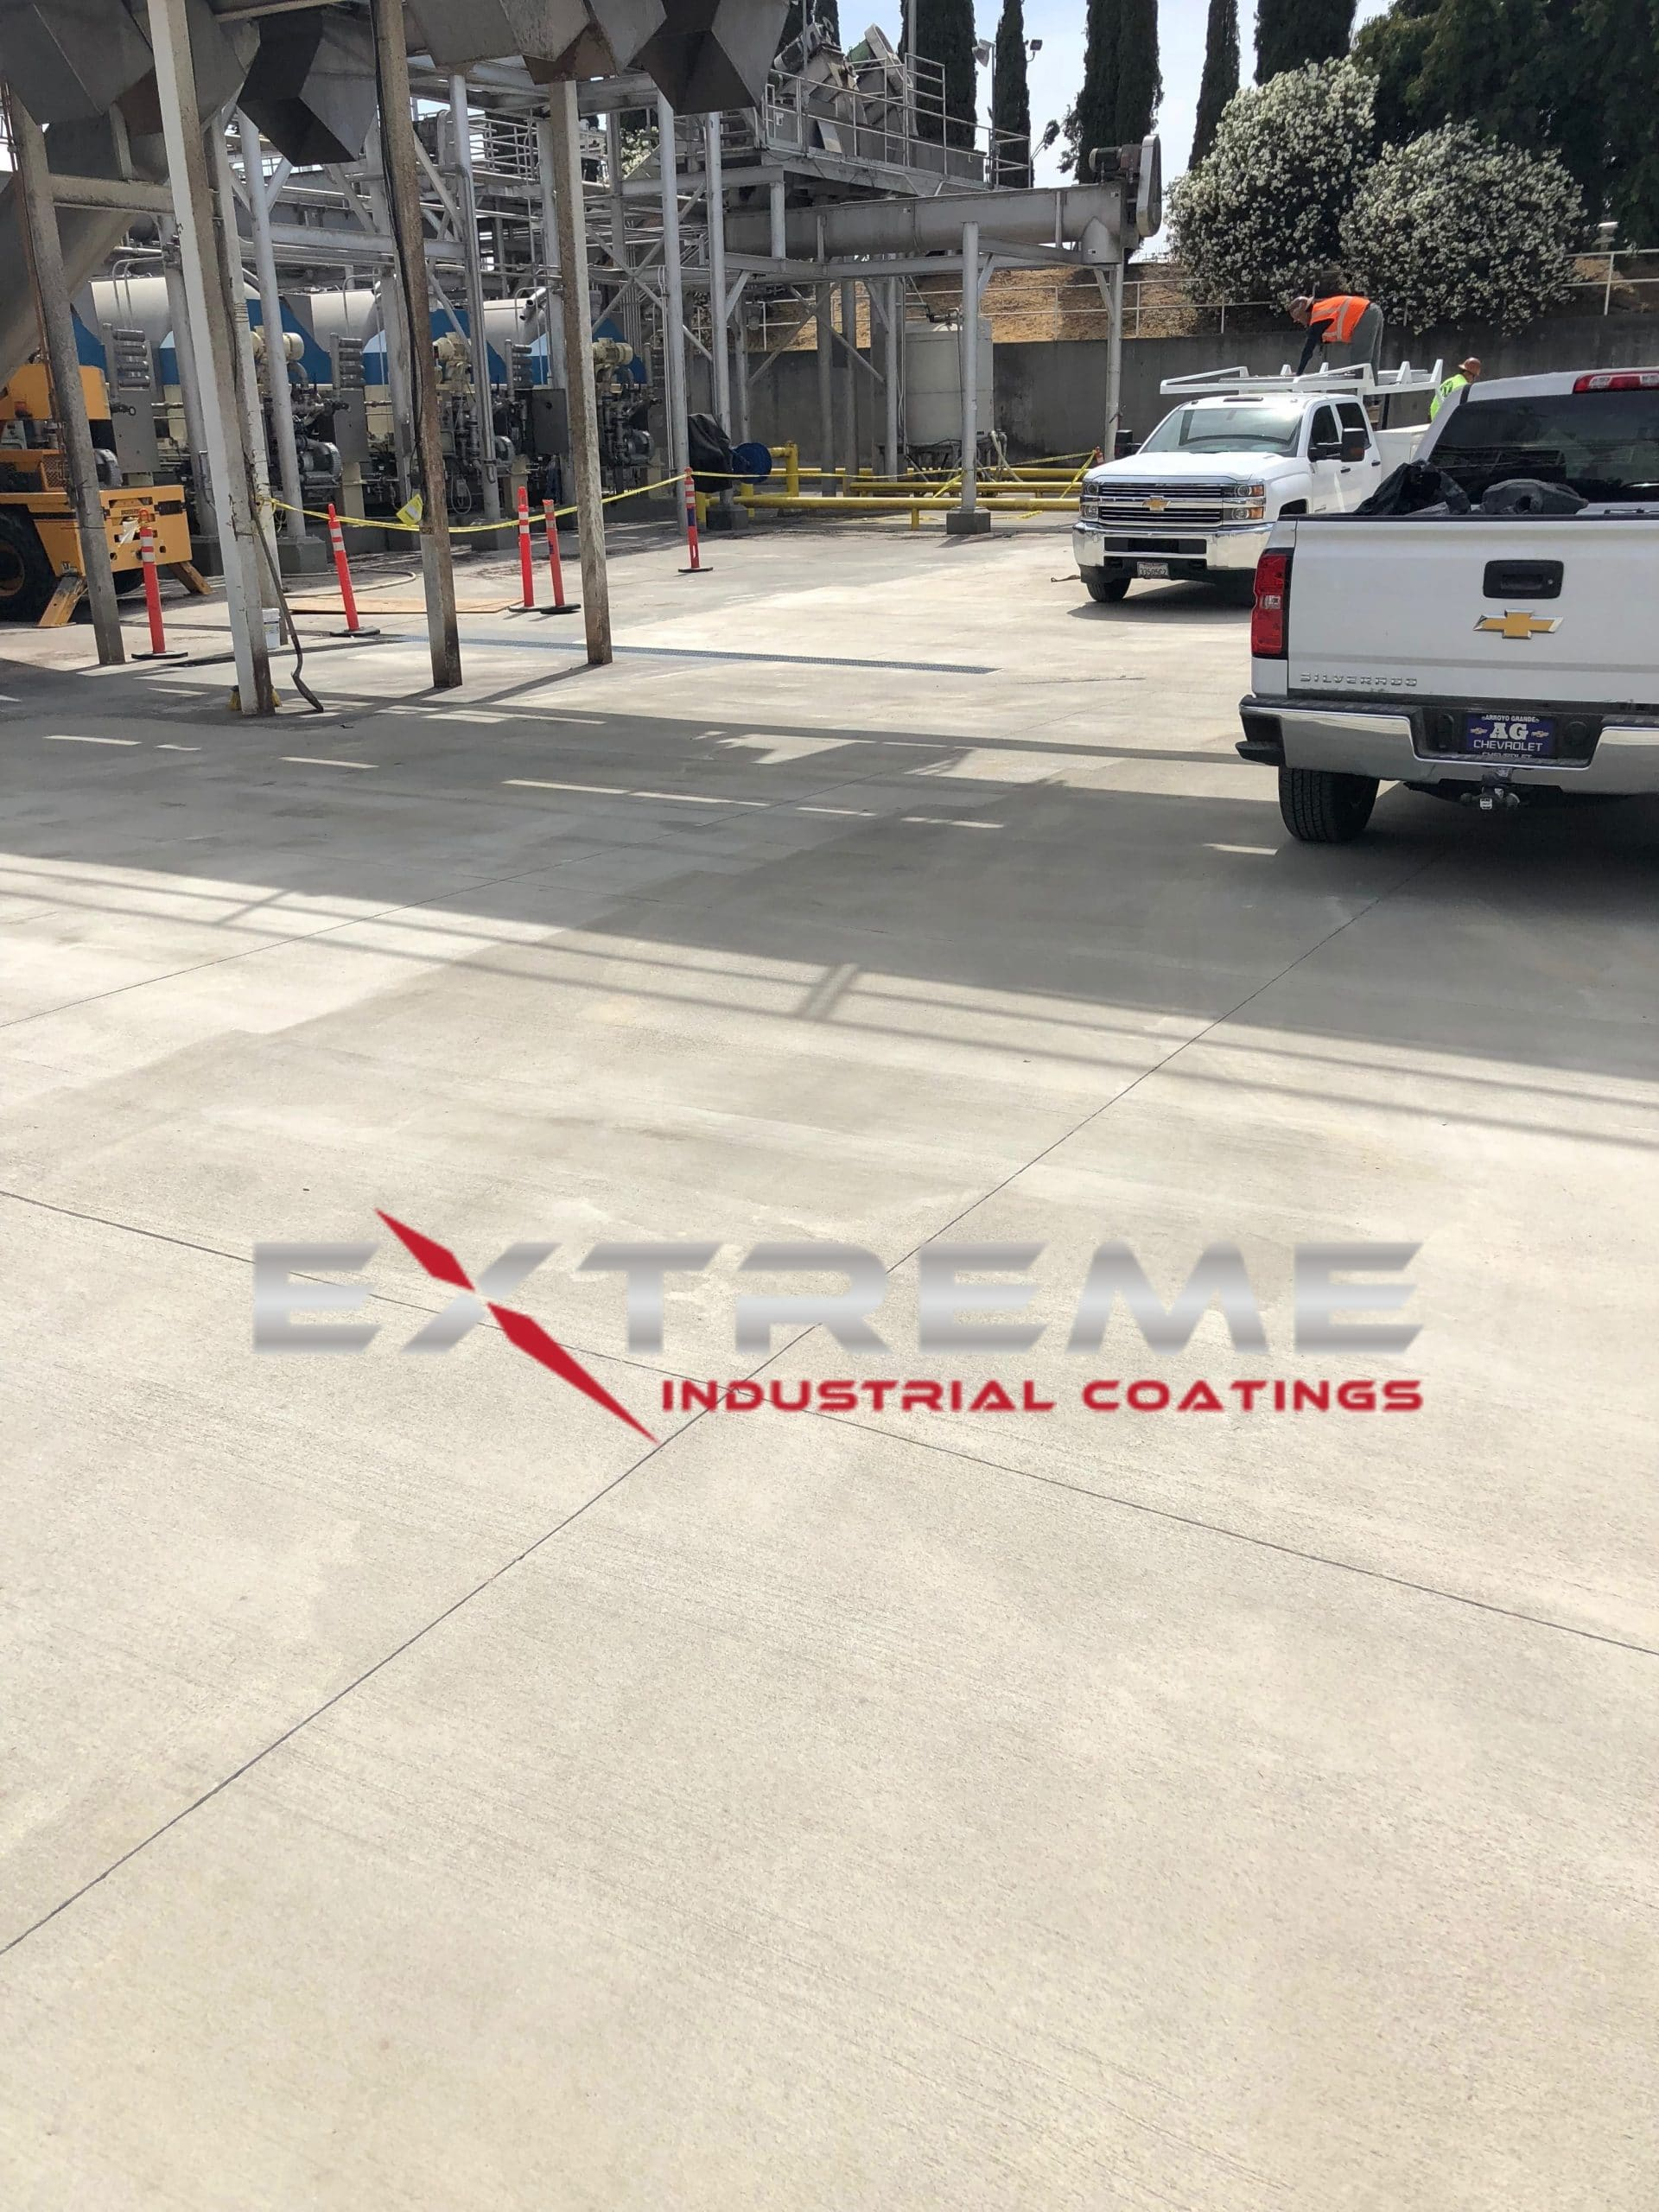 Slope Flooring to Drains | The Industrial Coatings Experts